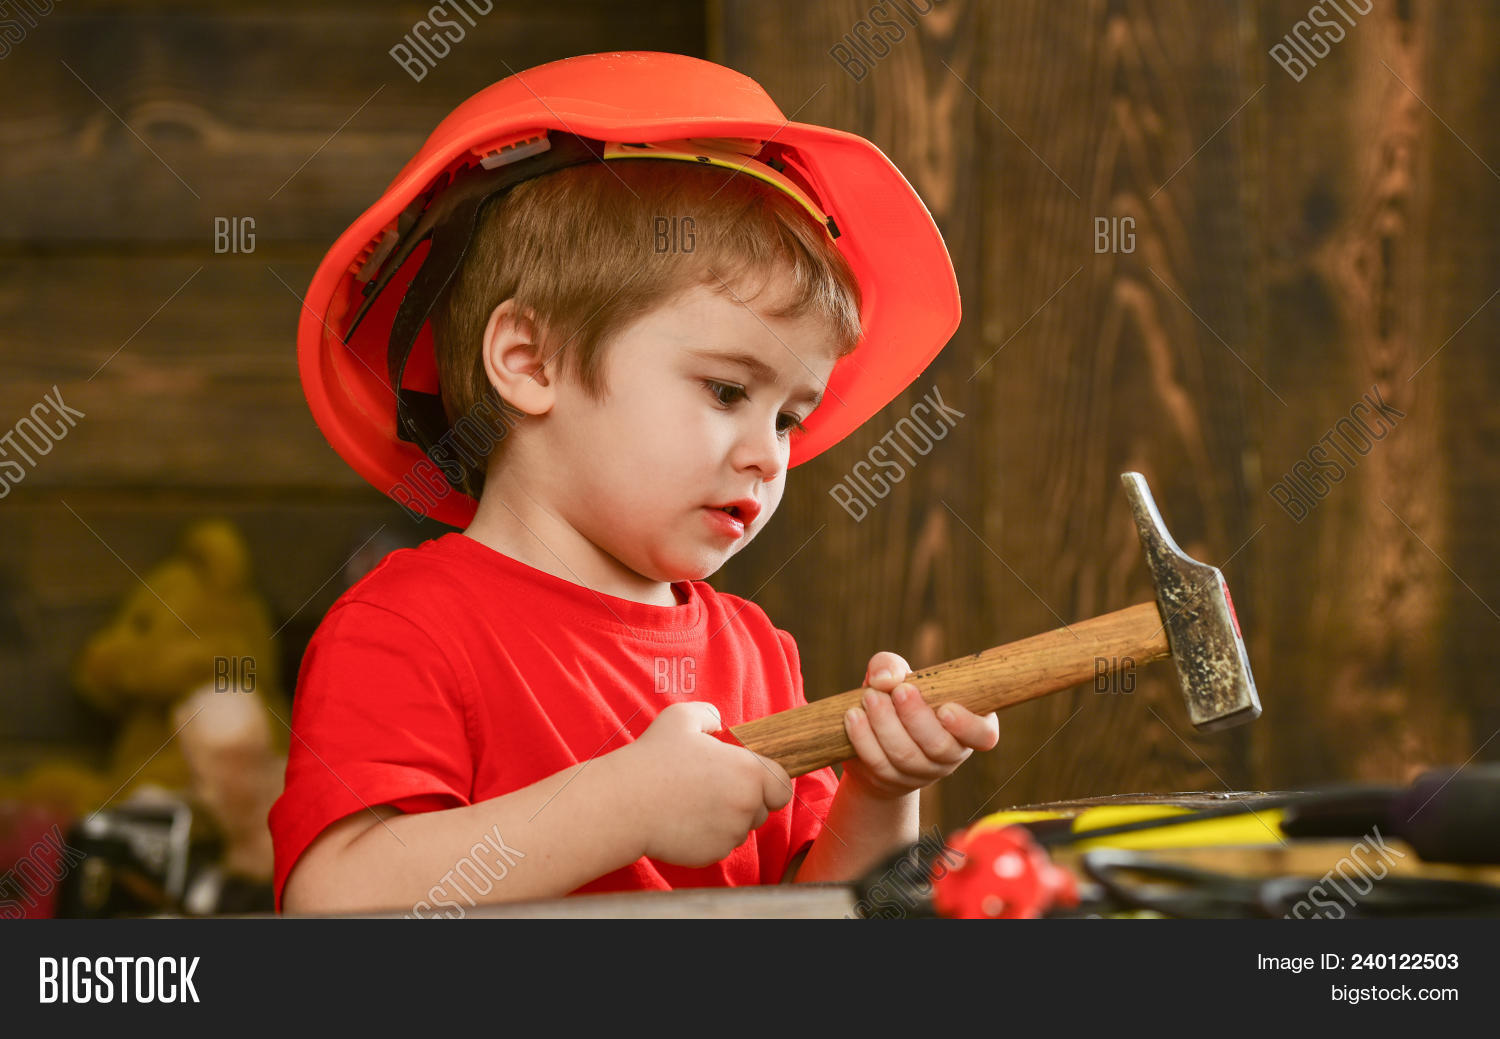 activity,adorable,architect,background,boy,build,builder,carpenter,caucasian,child,childhood,concept,construction,craft,cute,dream,education,engineer,equipment,future,game,hammer,hammering,handcraft,handyman,hard,hat,helmet,home,instrument,kid,labor,learn,little,nail,play,preschooler,profession,professional,repair,repairer,safety,small,toddler,tool,toy,use,wooden,work,workshop